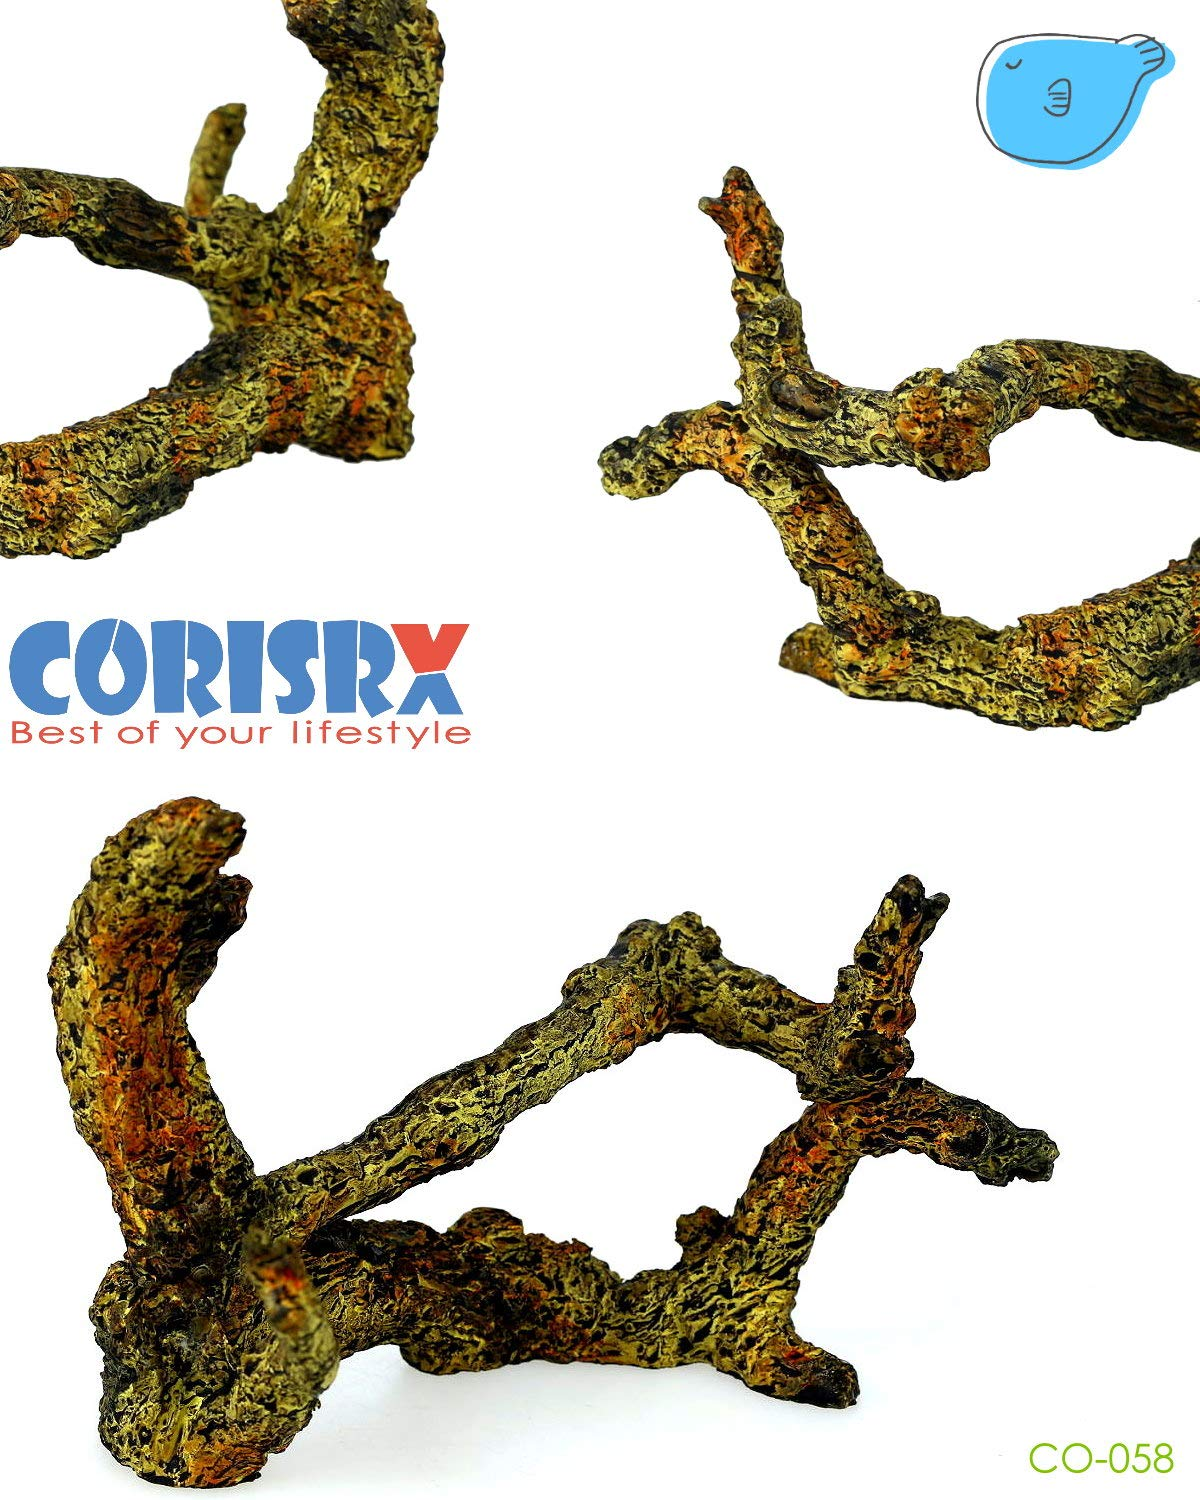 Corisrx Driftwood for Aquarium Decoration Freshwater Fish Tank Plant Shrimp Decor (CO-058) by CORISRX BEST OF YOUR LIFESTYLE